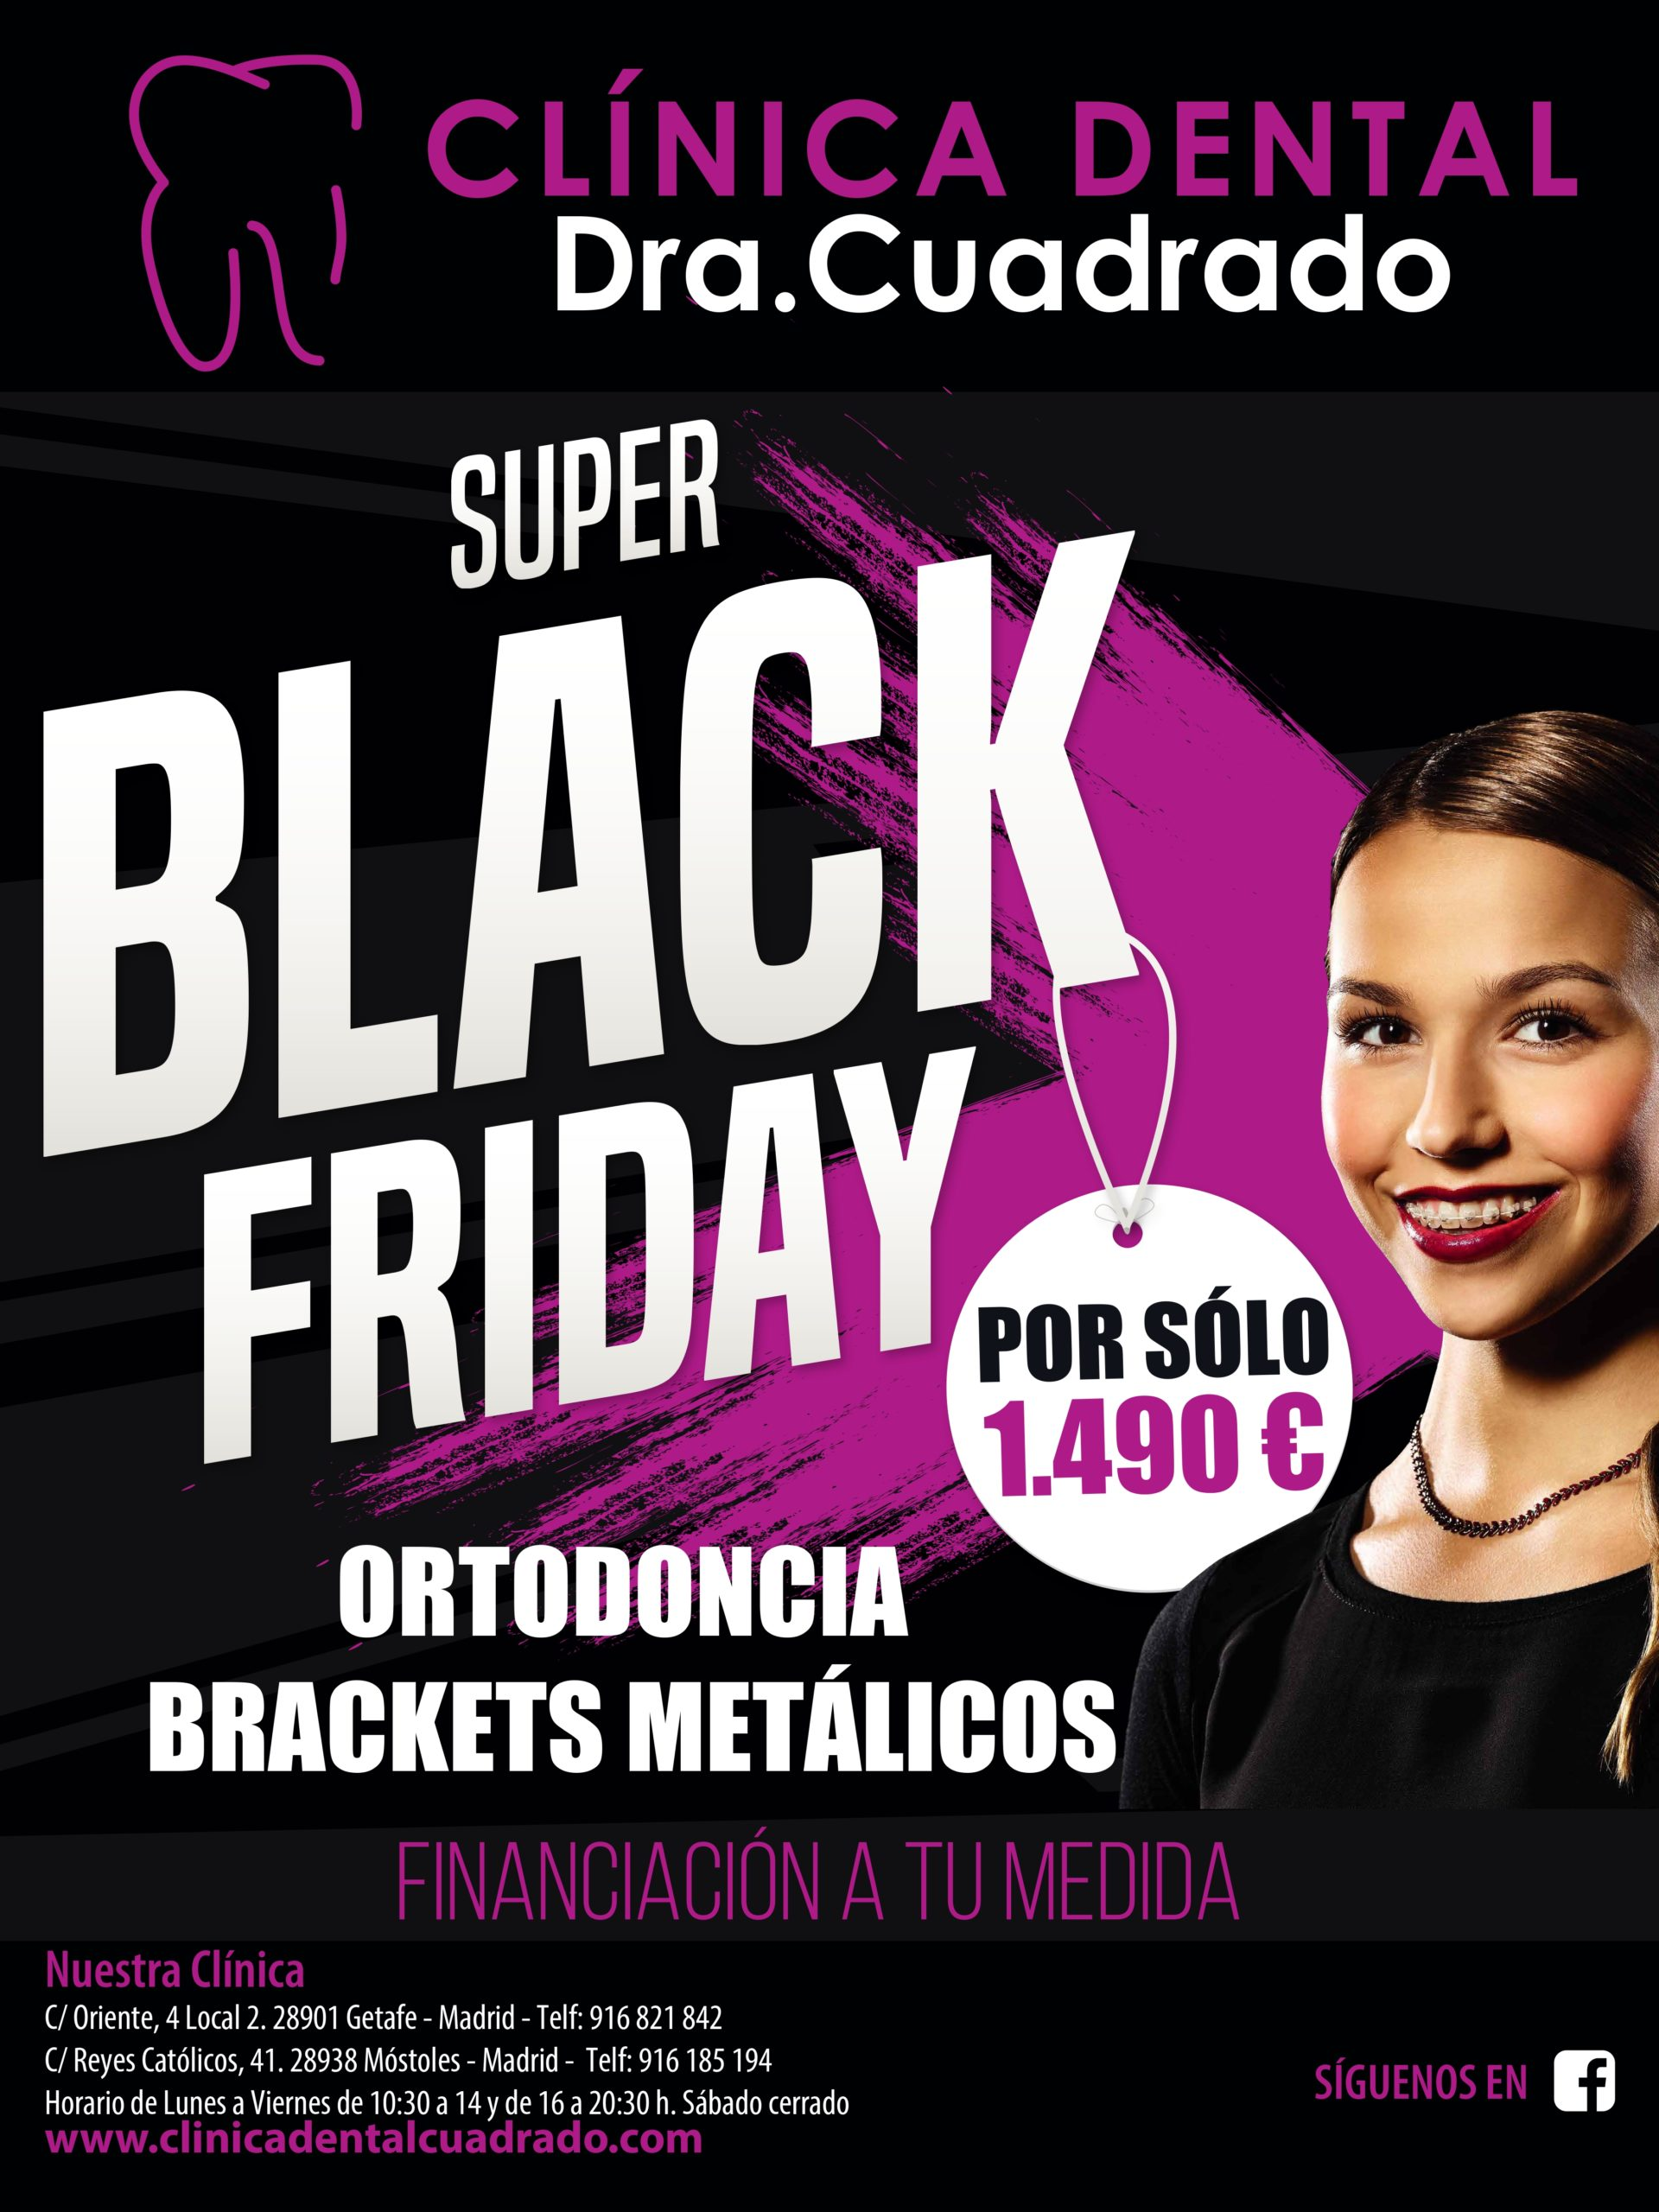 El Super Black Friday llega a la Clínica Dental Doctora Cuadrado